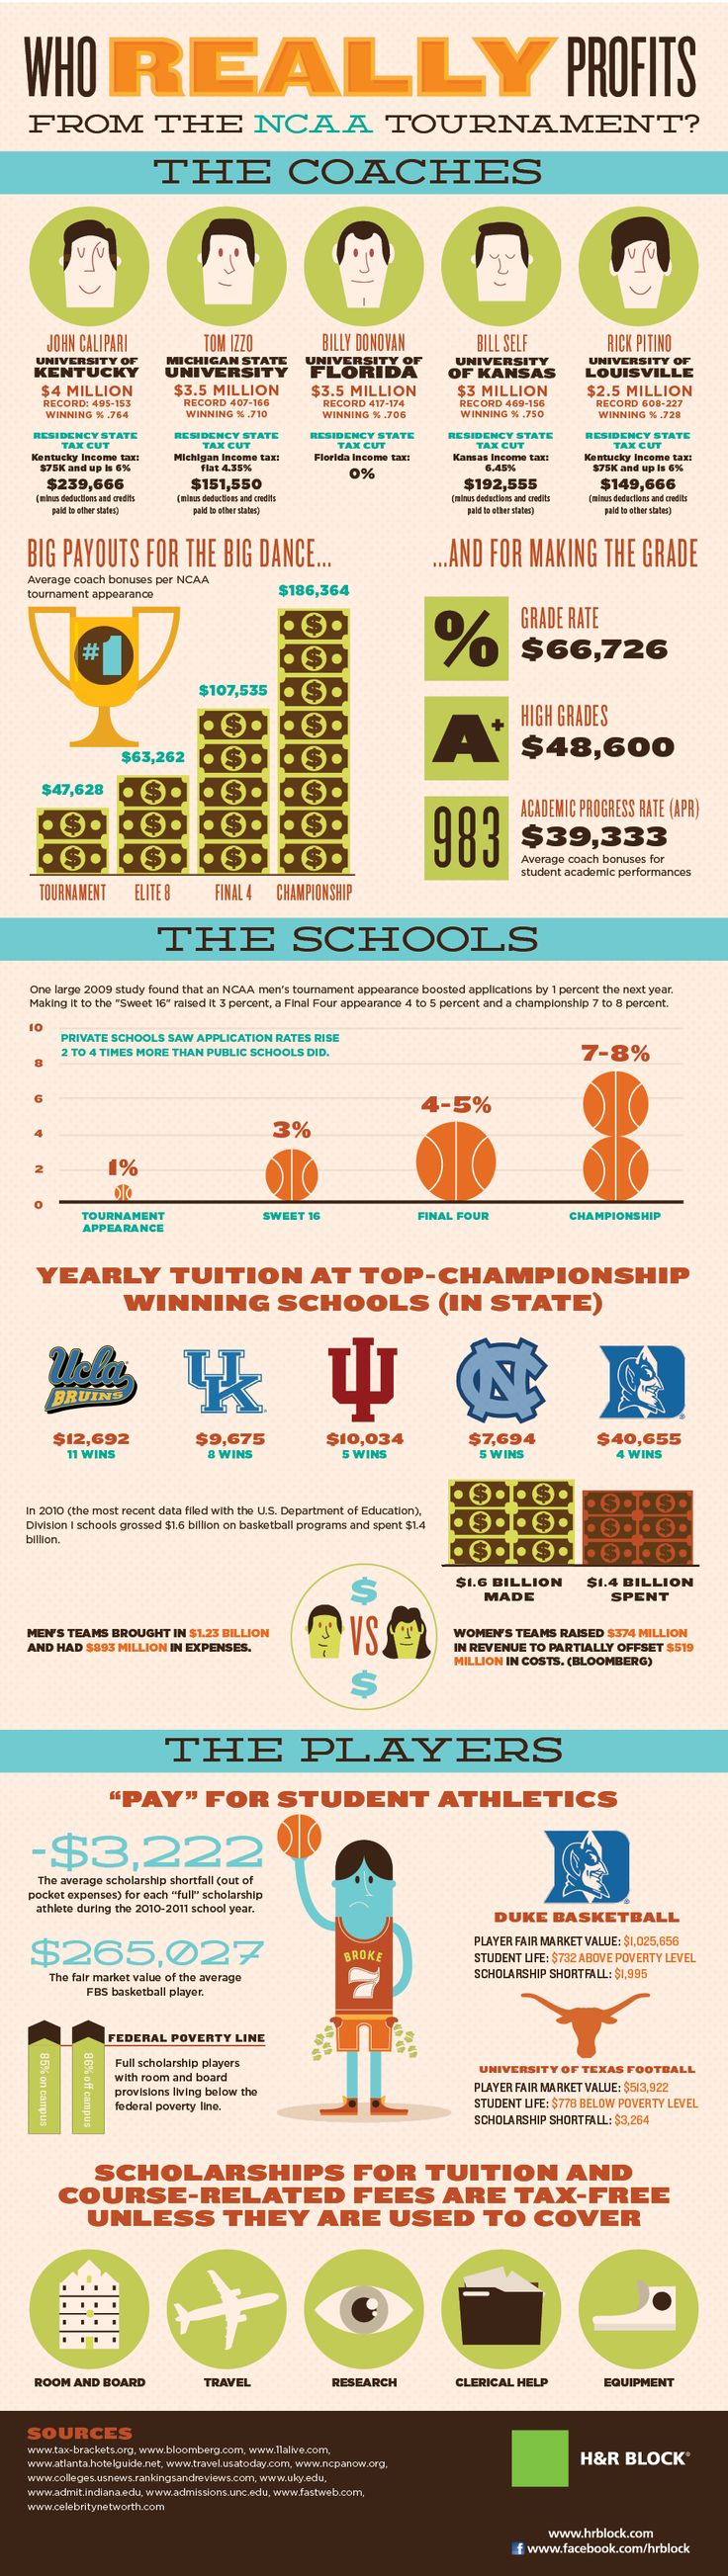 #EAv (e)LOCRIS @LOCRIS | INFOGRAPHIC: Who Really Profits From The NCAA Basketball Tournament?